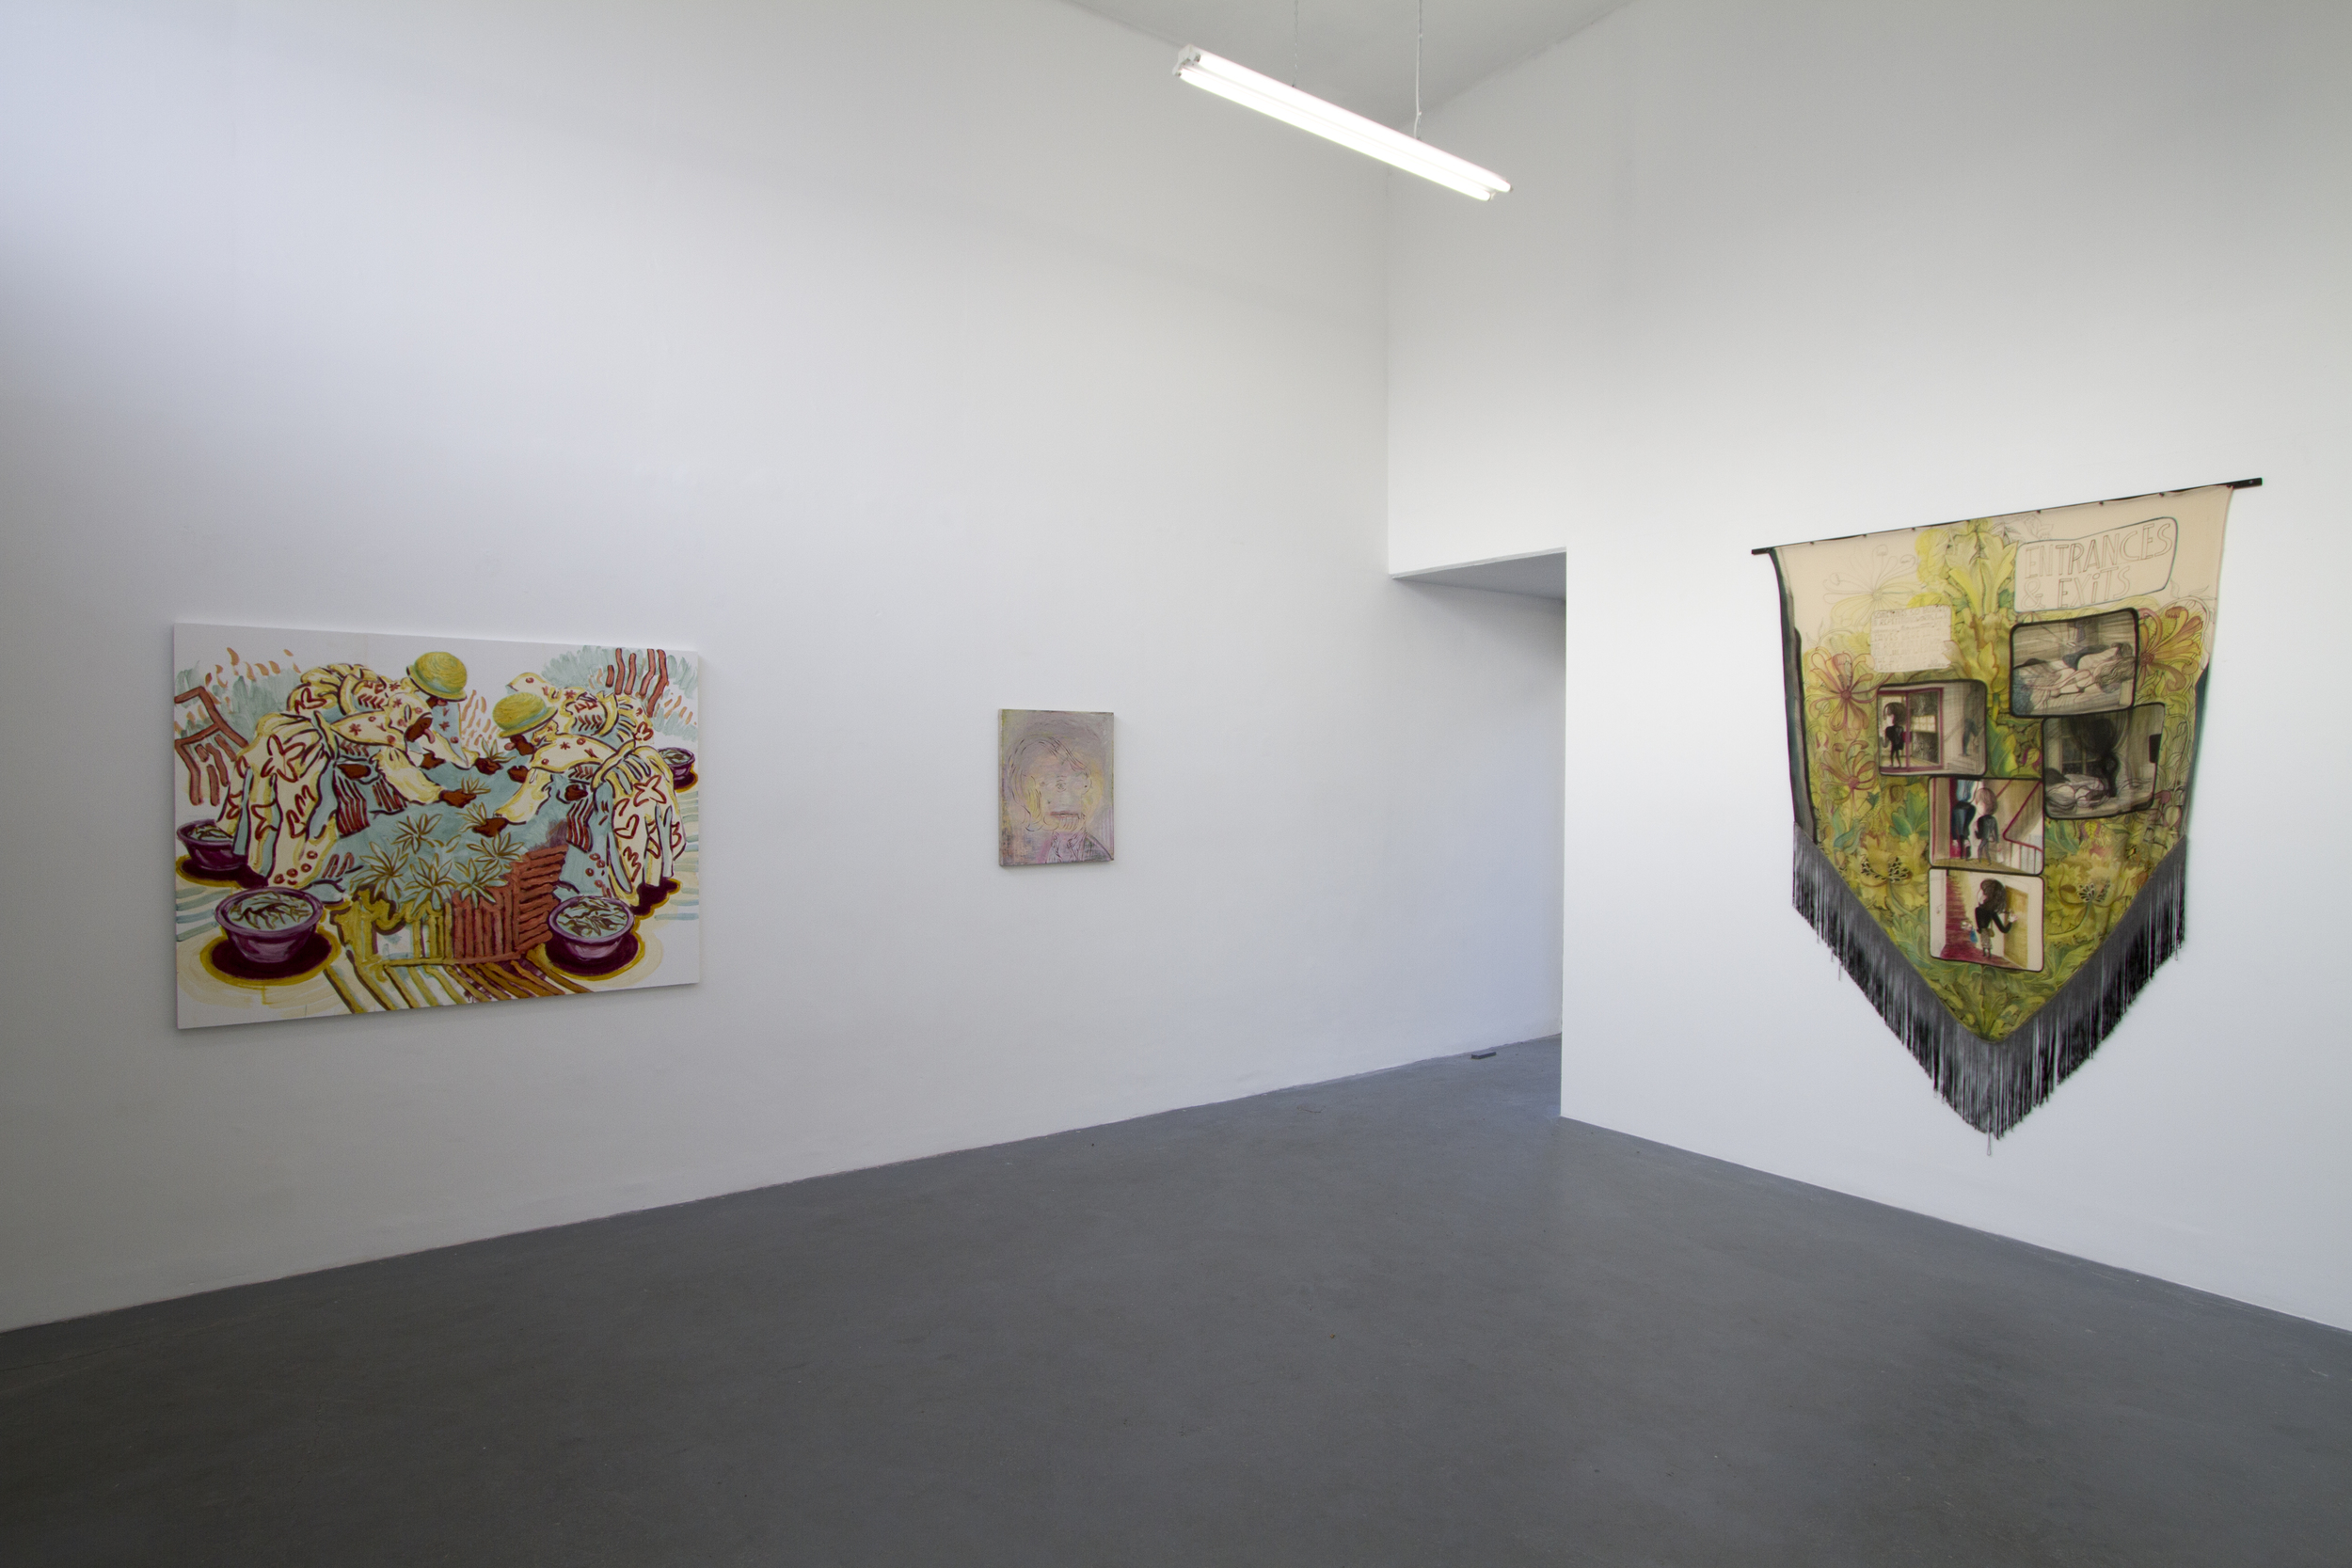 Courtesy of Emma Talbot, Domo Baal and Petra Rinck Galleries